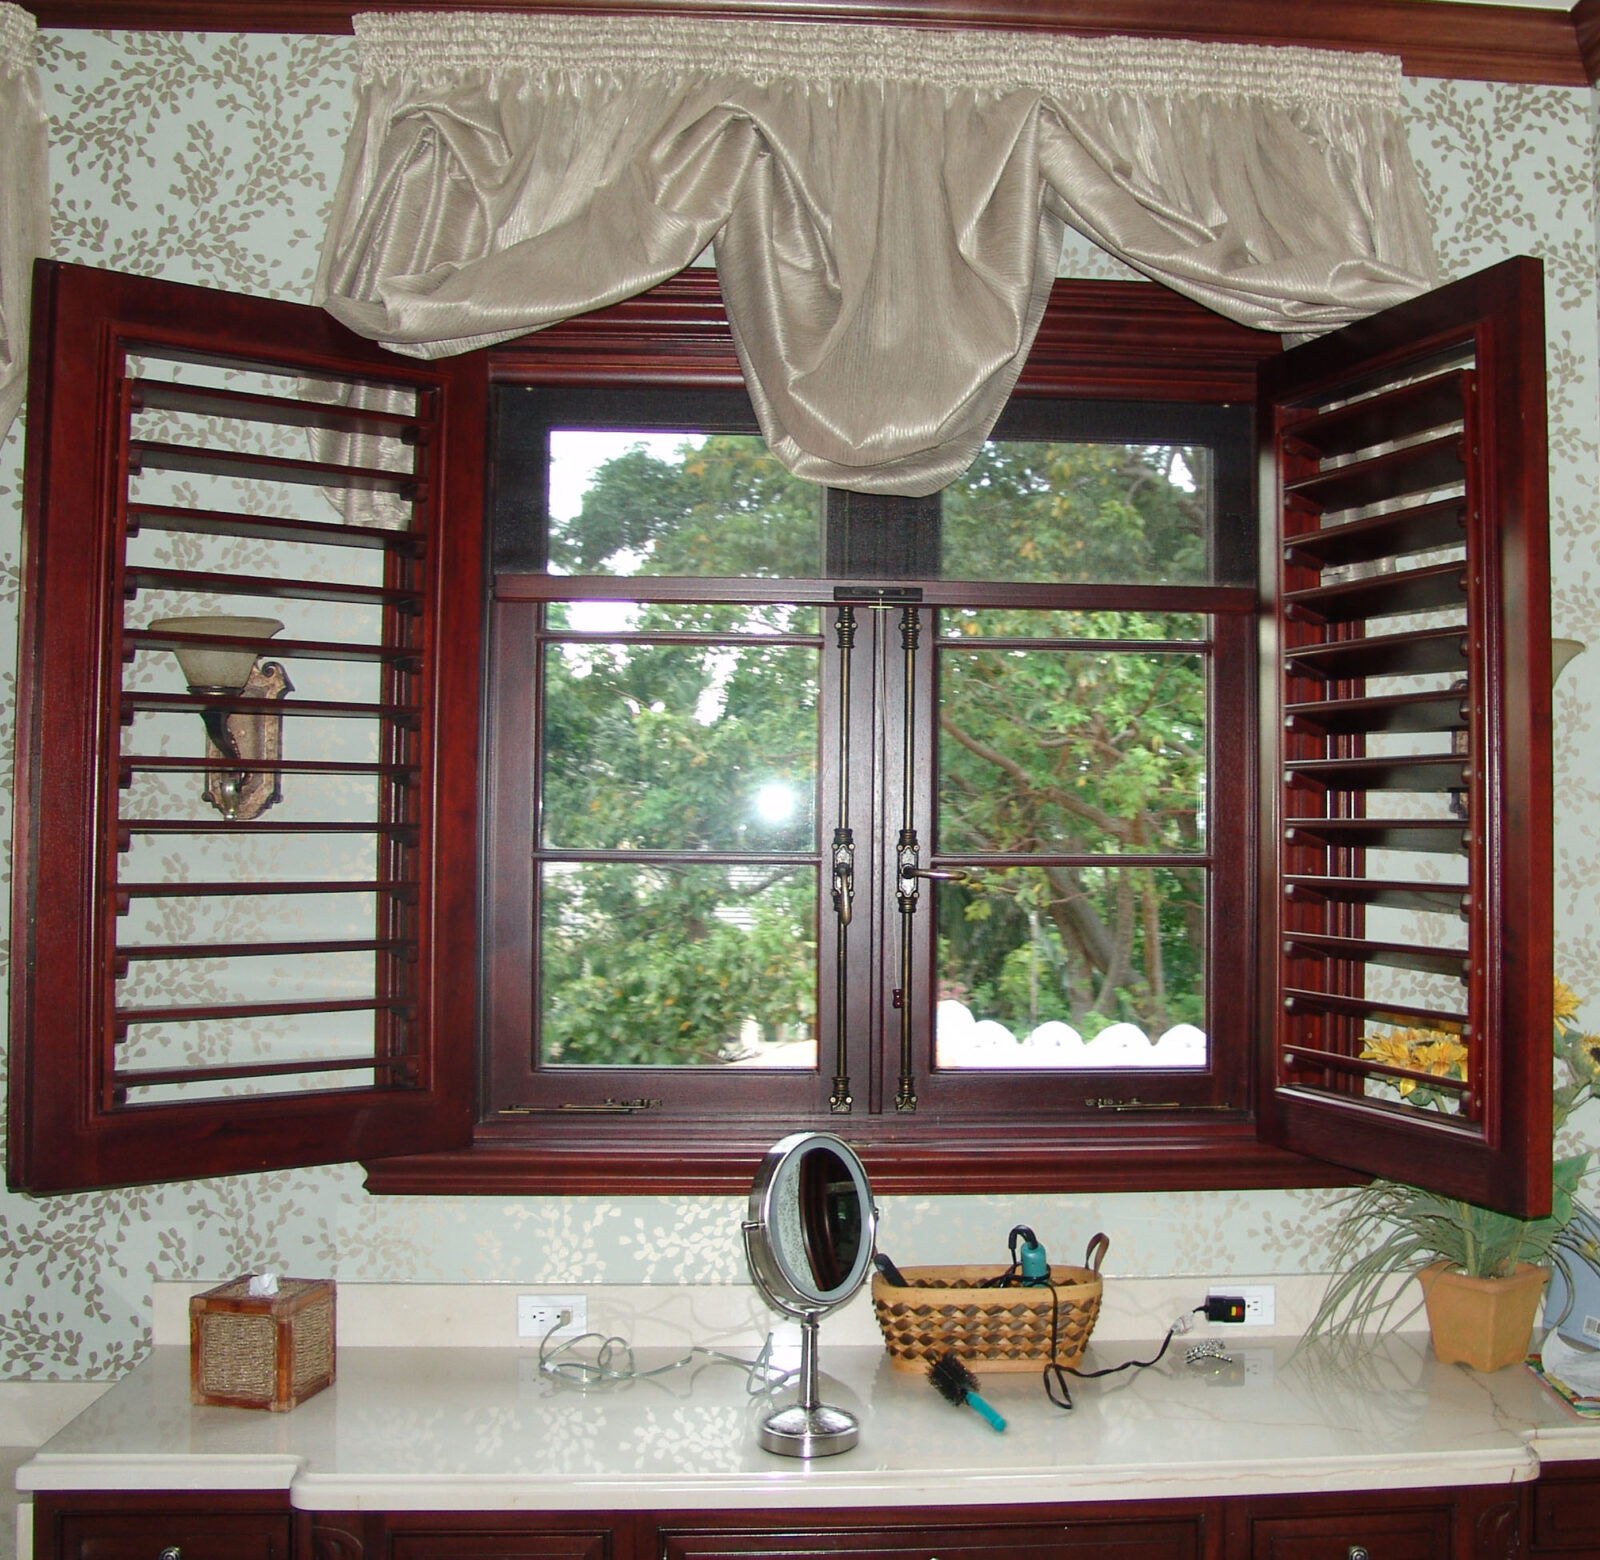 JUPITER MAHOGANY WINDOWS WITH BAHAMA SHUTTERS